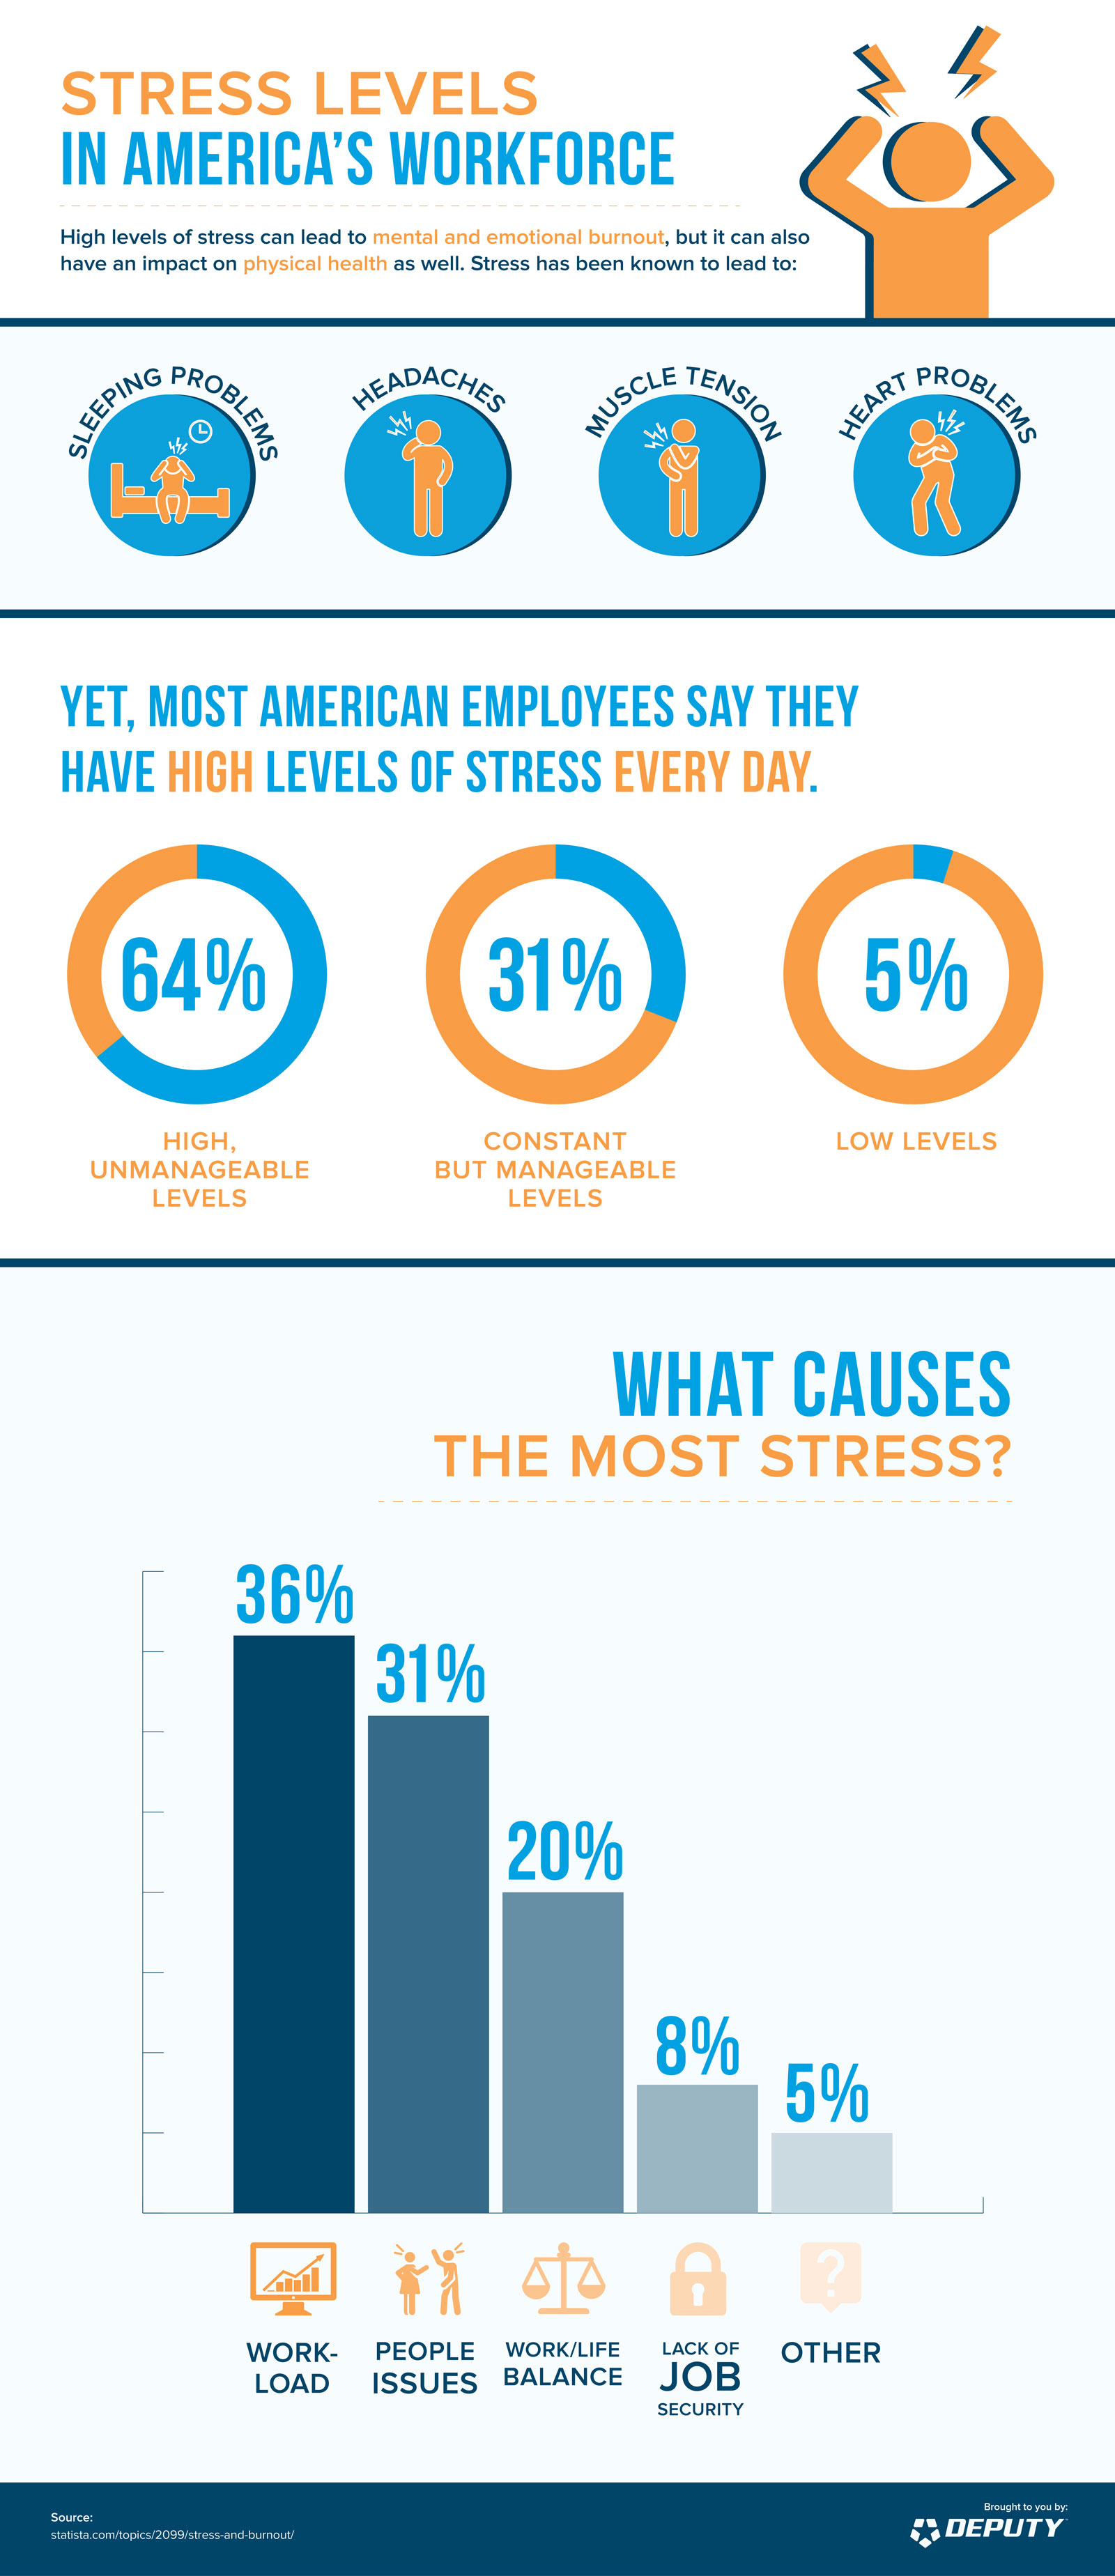 Deputy-Stress_Levels_in_America_s_Workforce_infographic